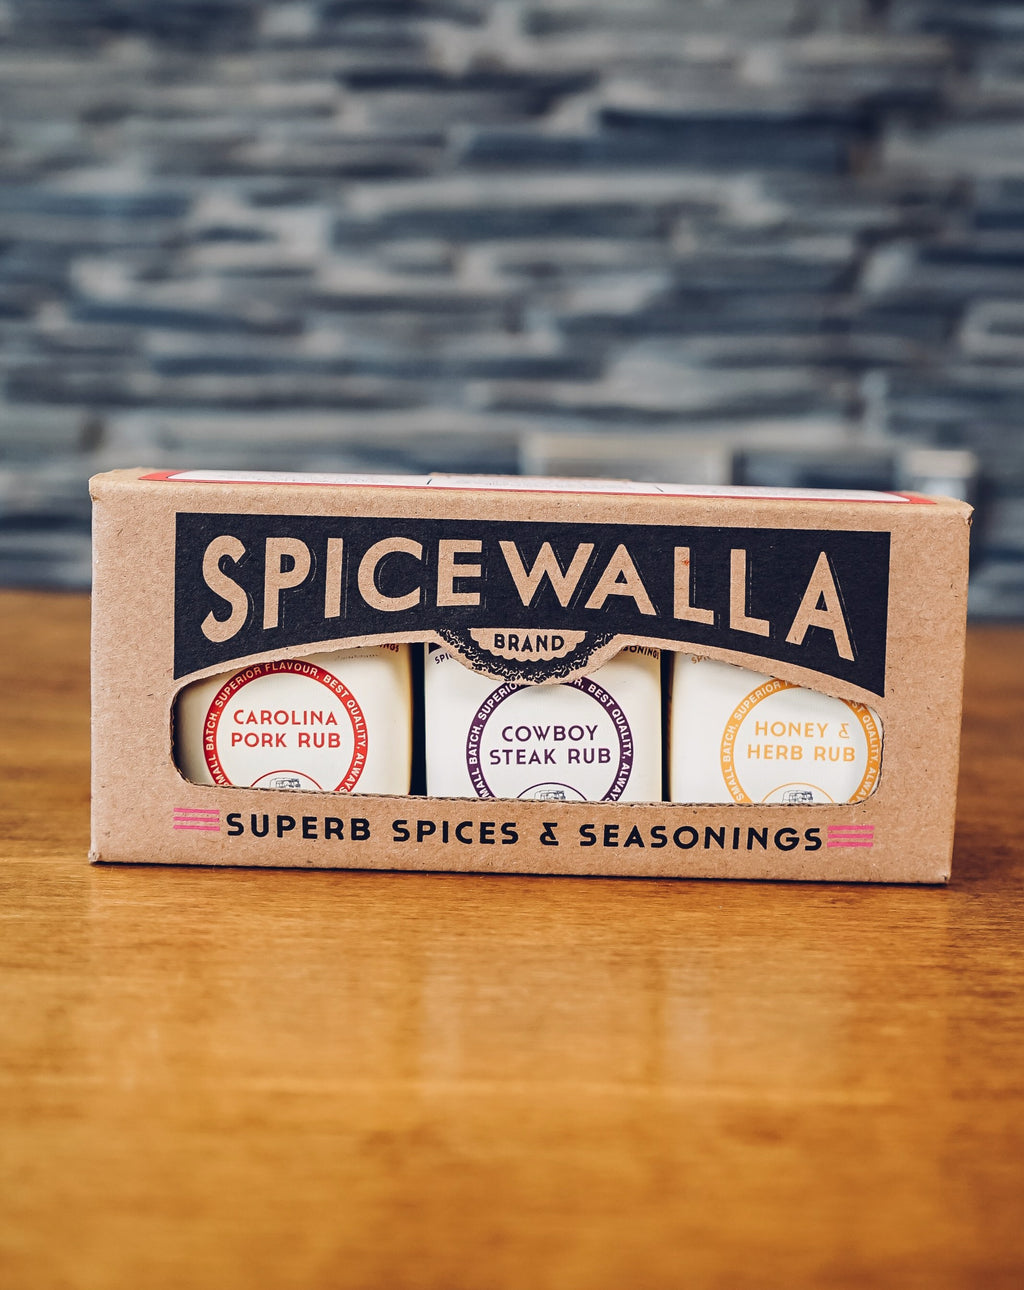 Spicewall Grill & Roast Collection - Provisions, LLC